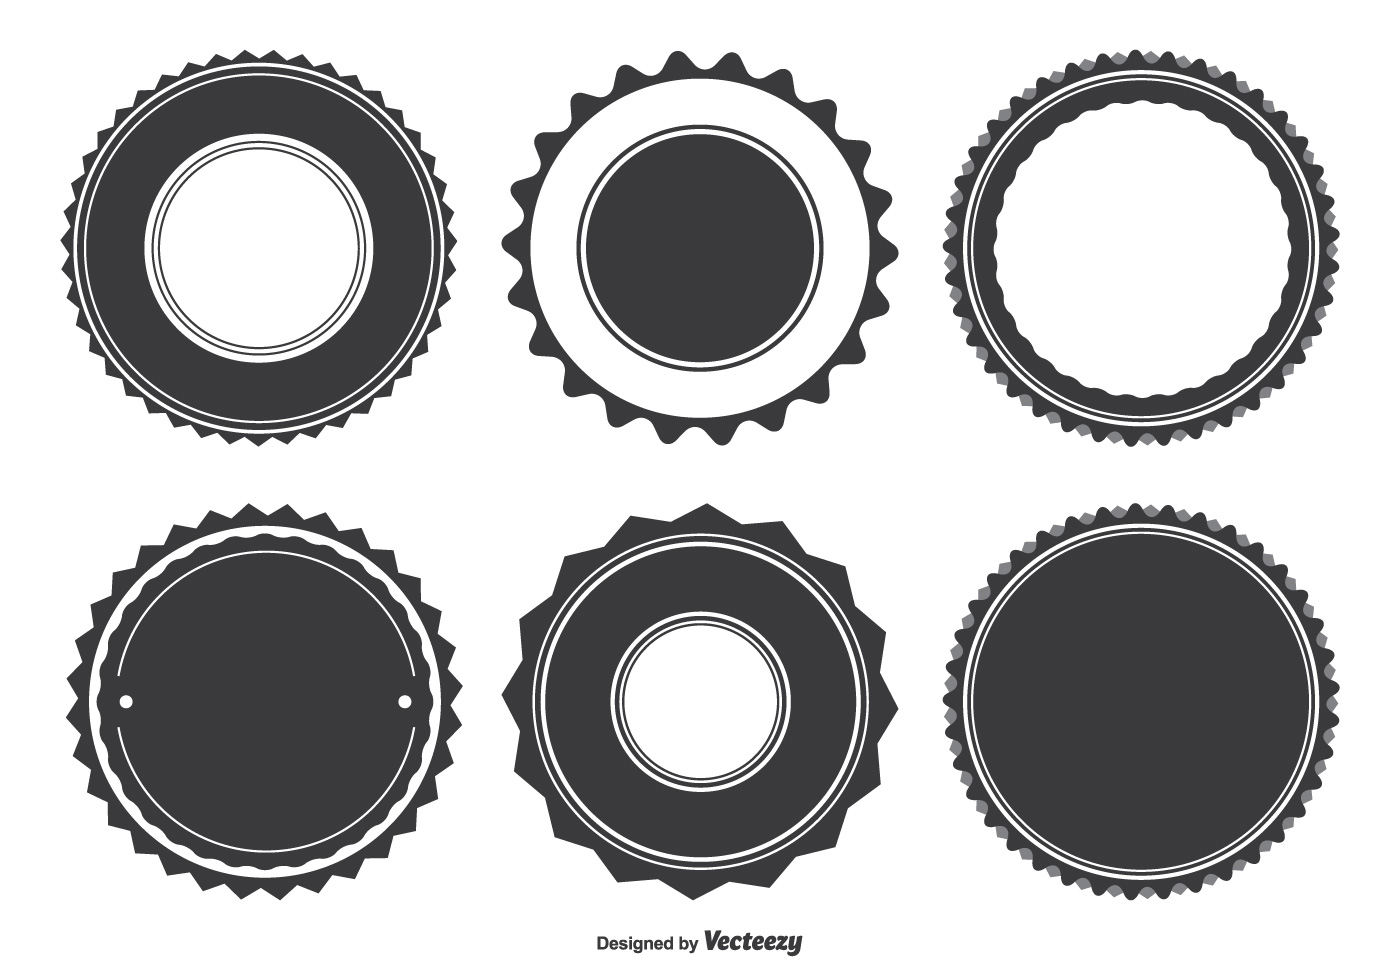 Retro Shapes Vector at GetDrawings com | Free for personal use Retro